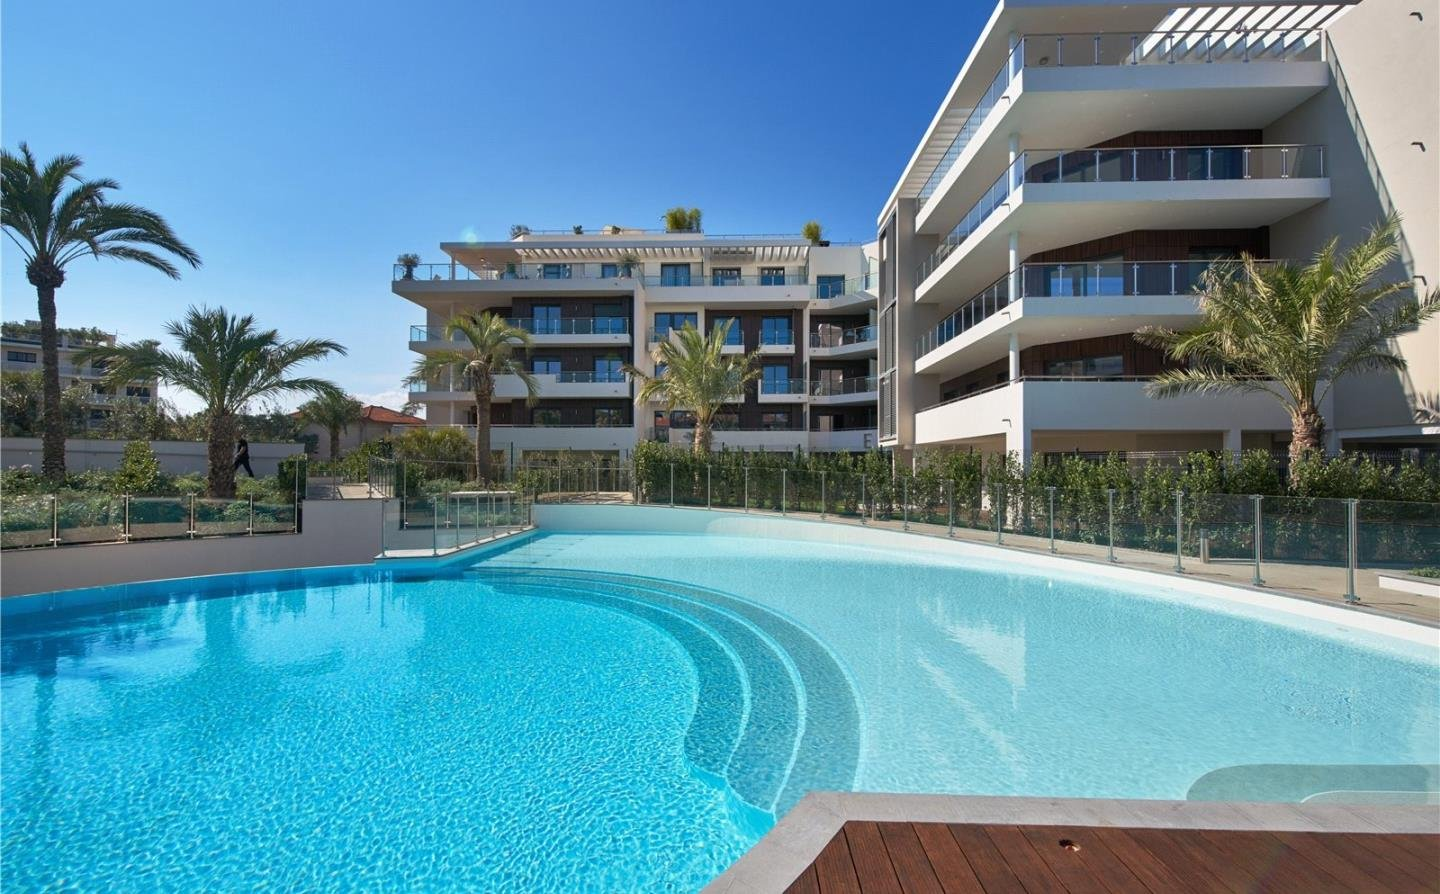 Cap d'Antibes - 3 bedroom apartment  with large terraces in exceptional residence.